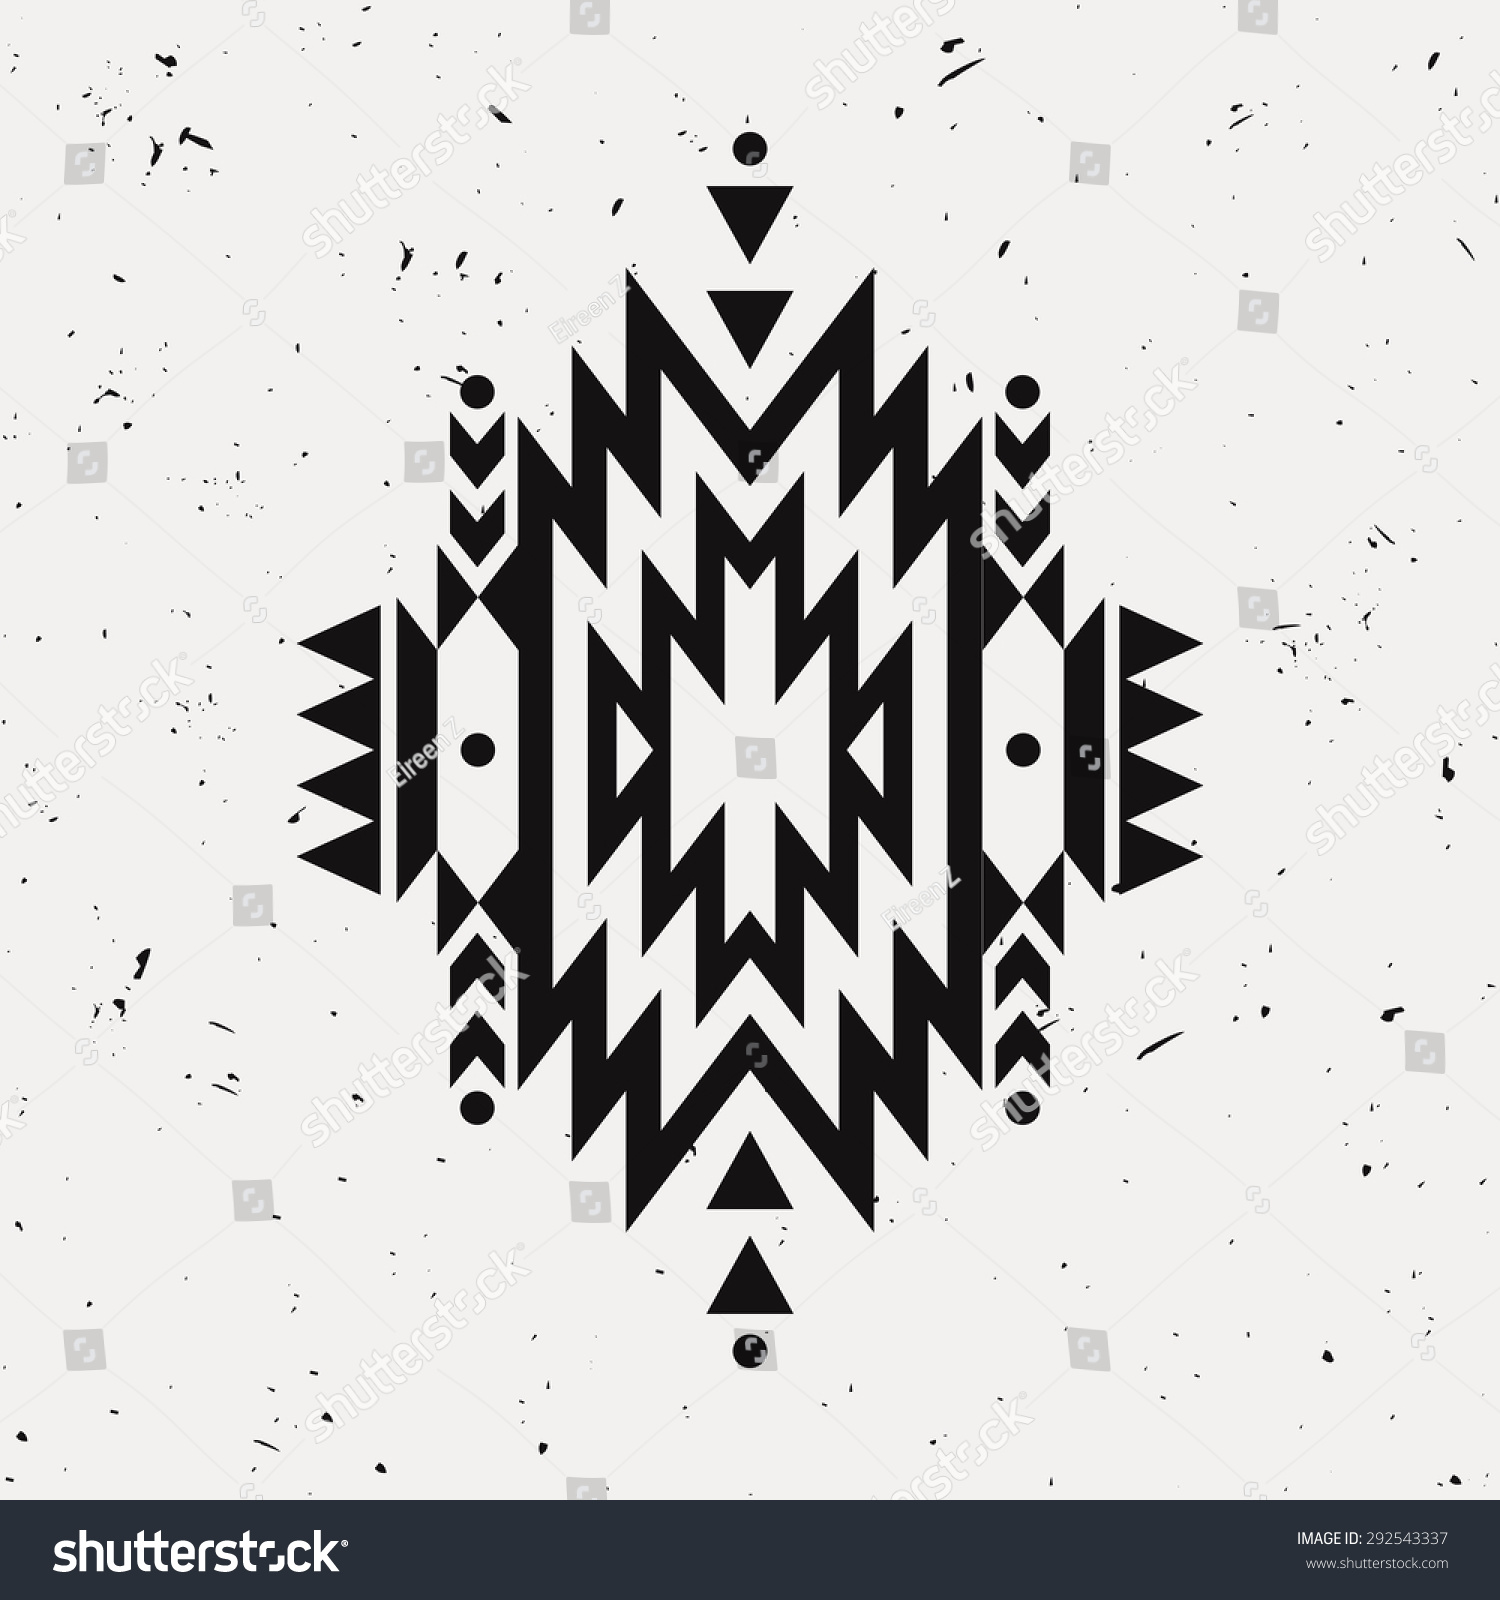 Vector grunge monochrome decorative ethnic pattern American indian motifs Background with black aztec tribal ornament